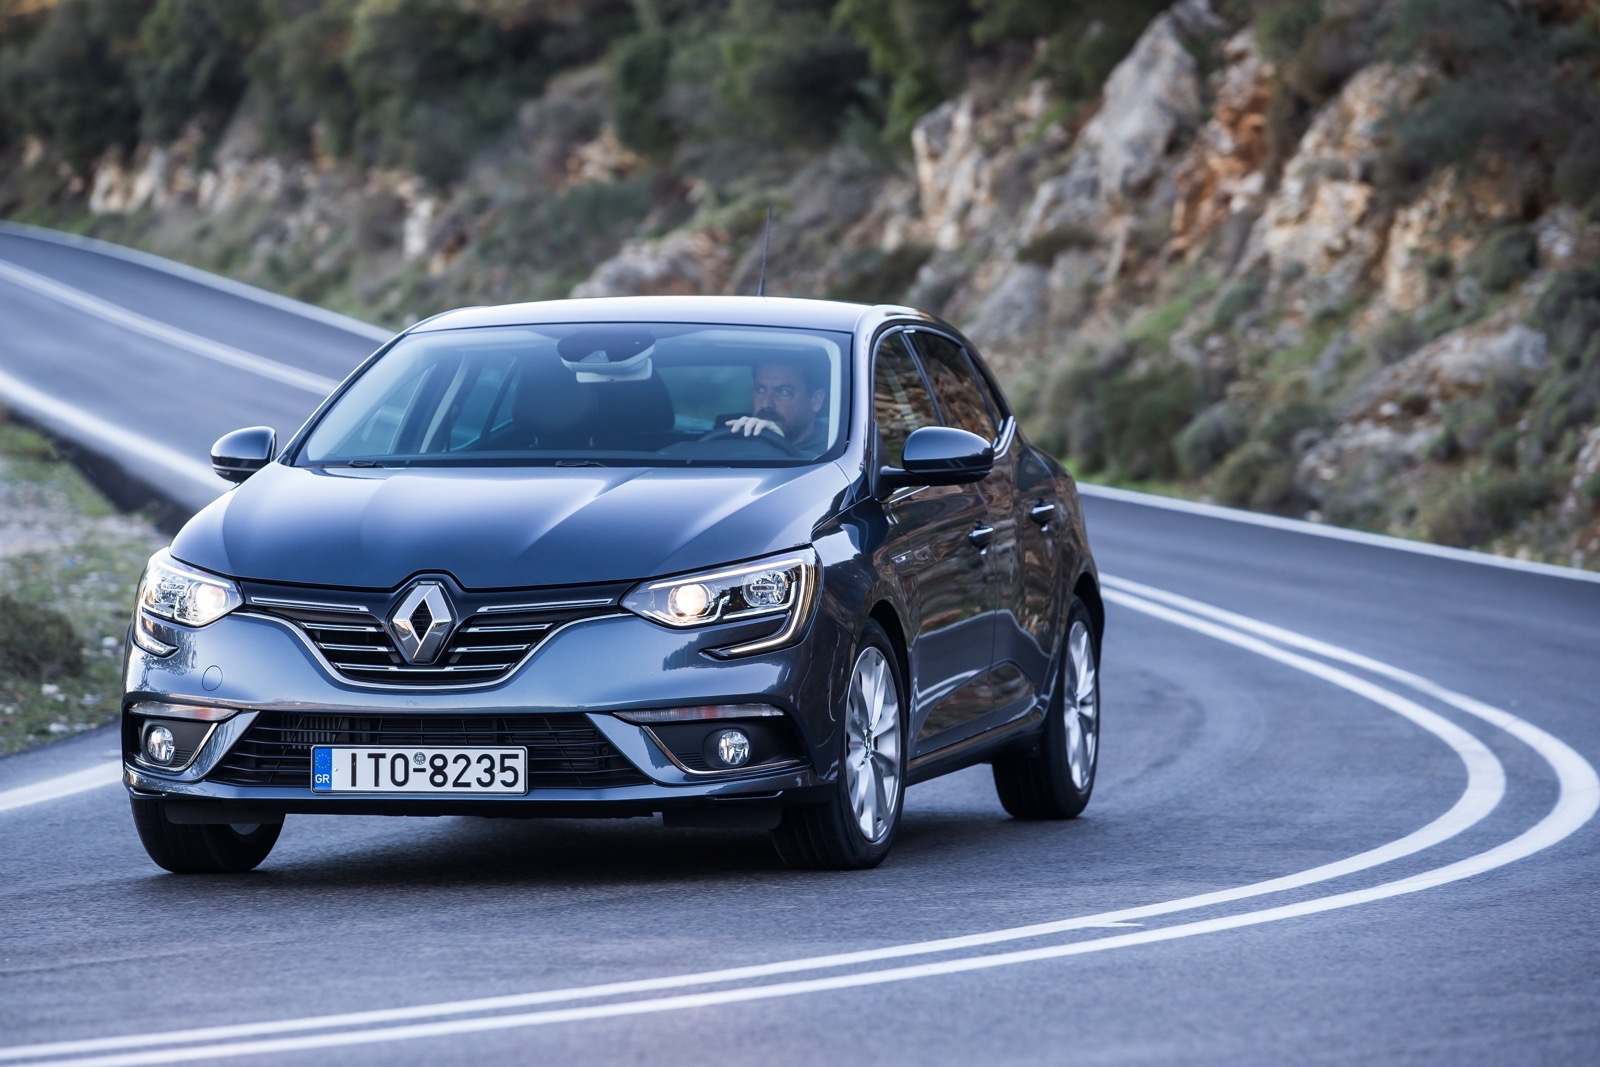 First_Drive_Renault_Megane_60